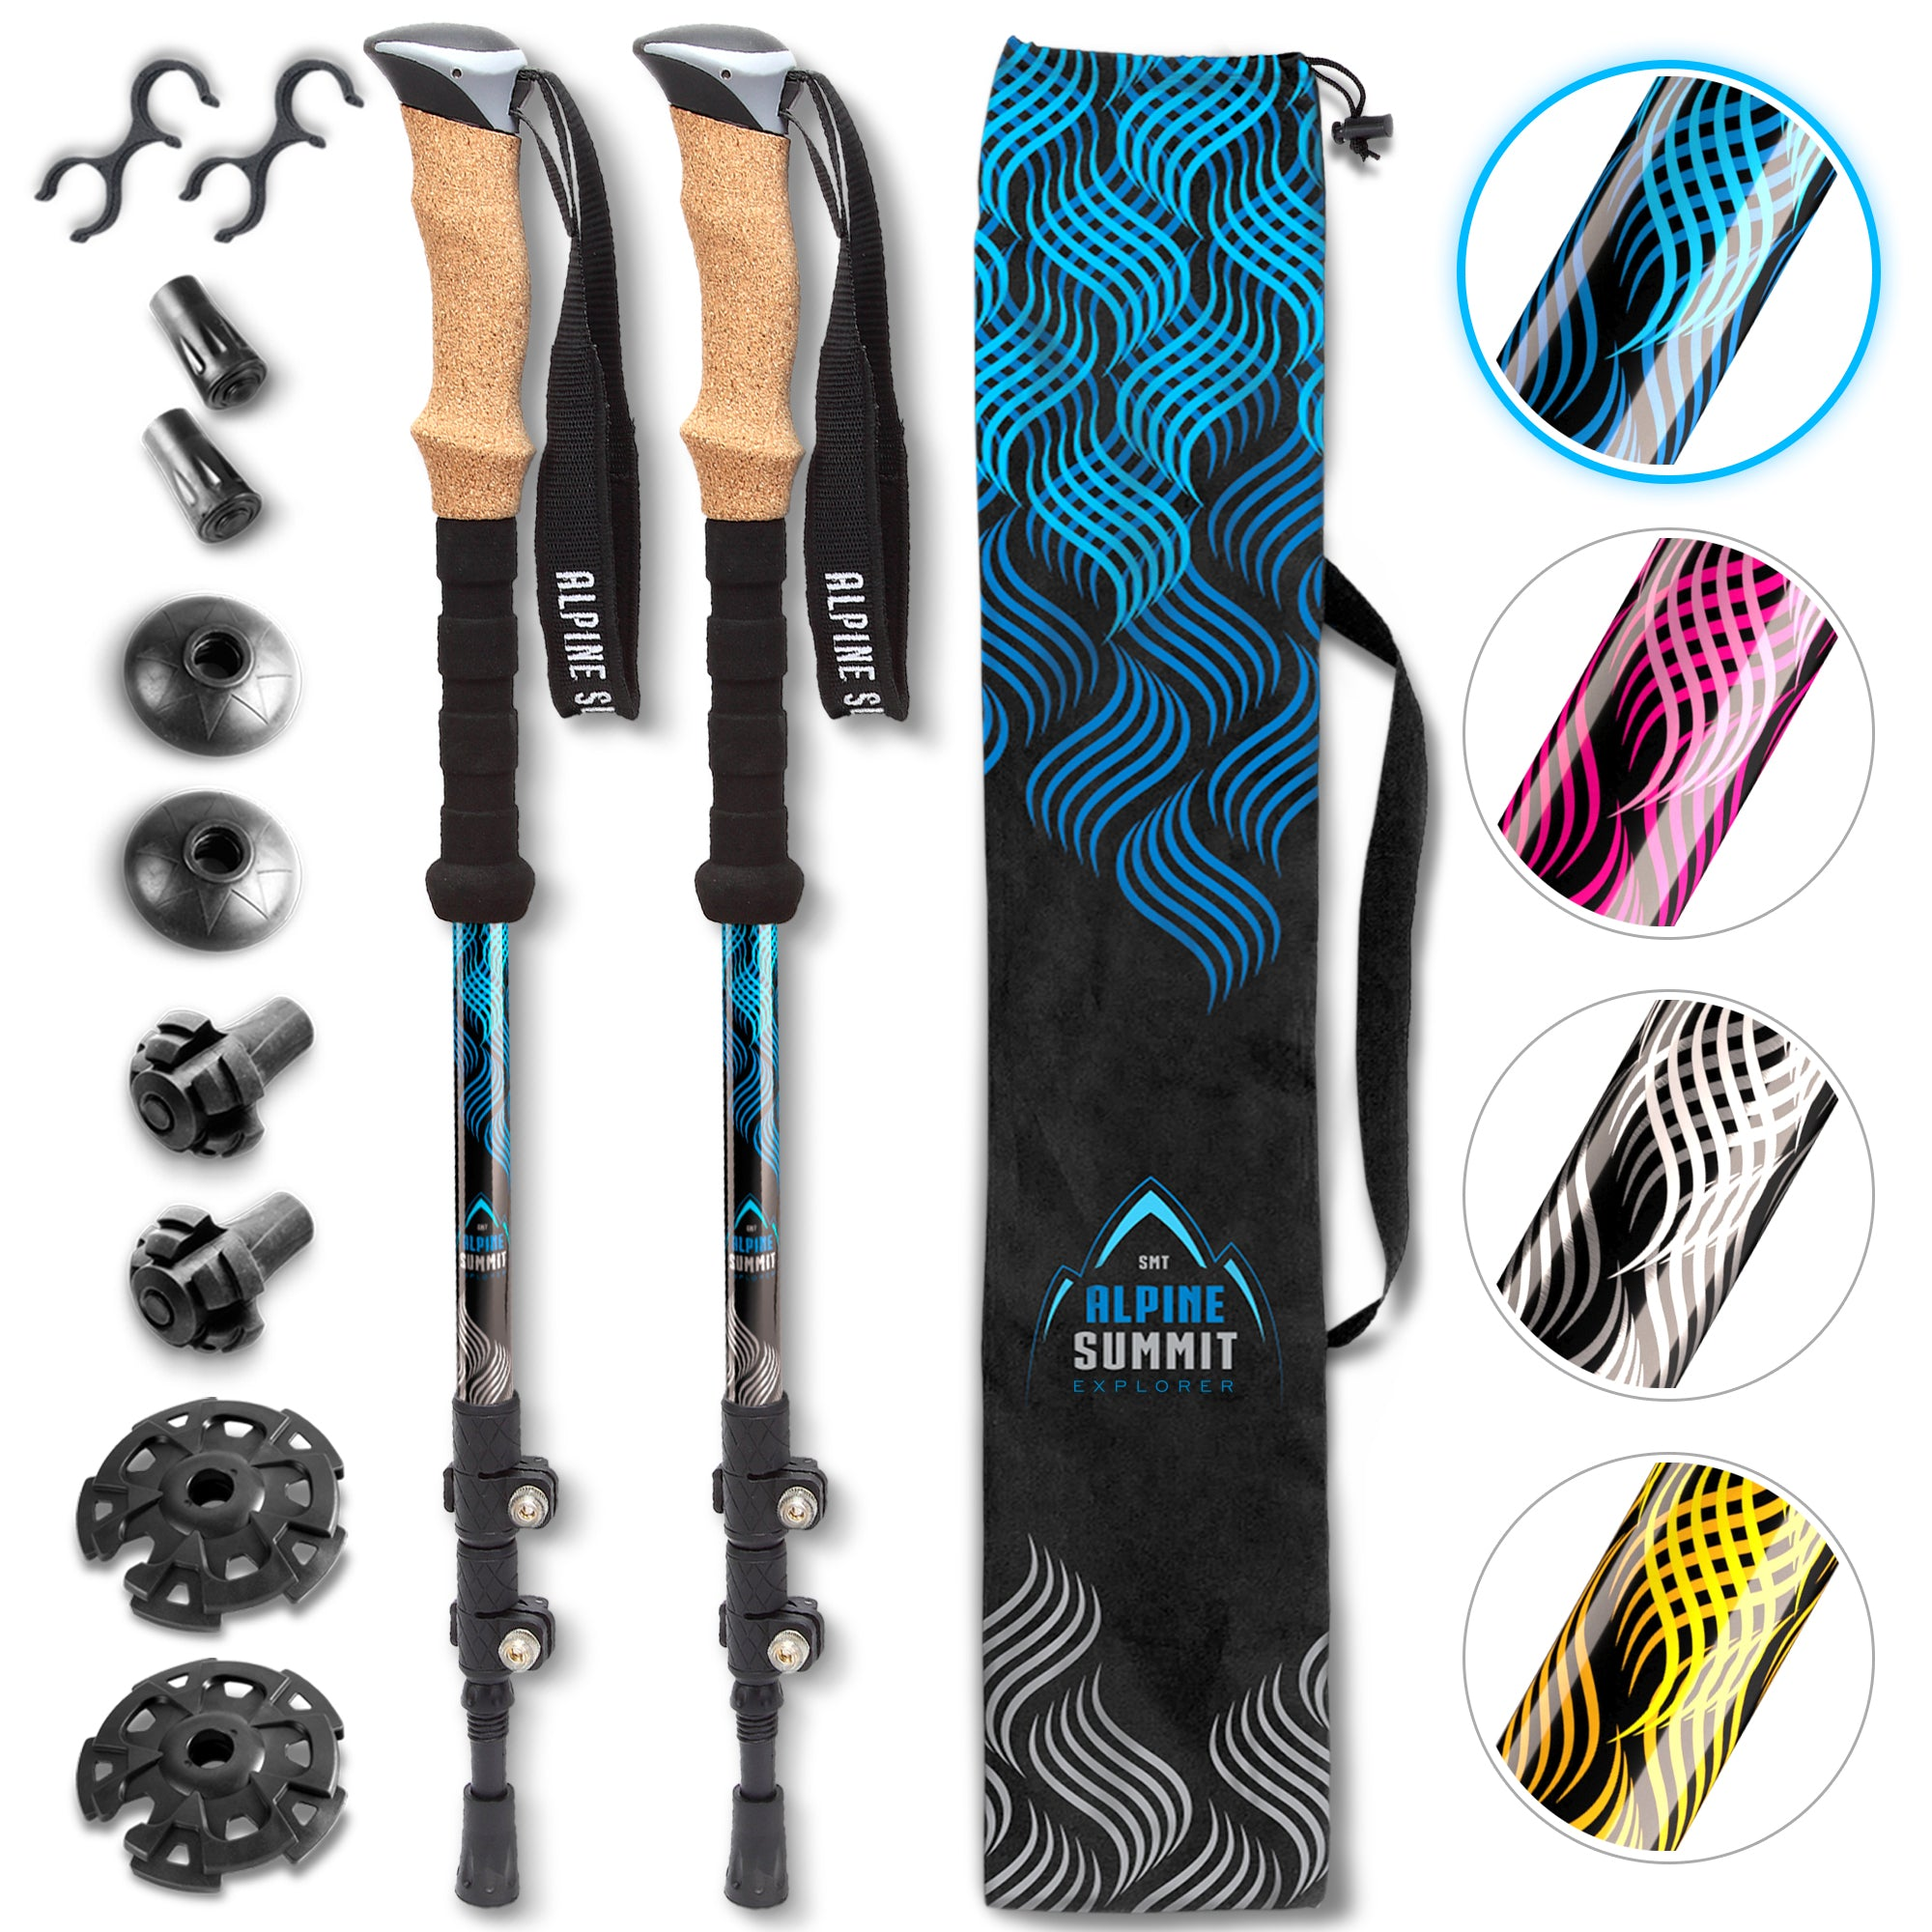 Alpine Summit Explorer Edition Trekking Poles